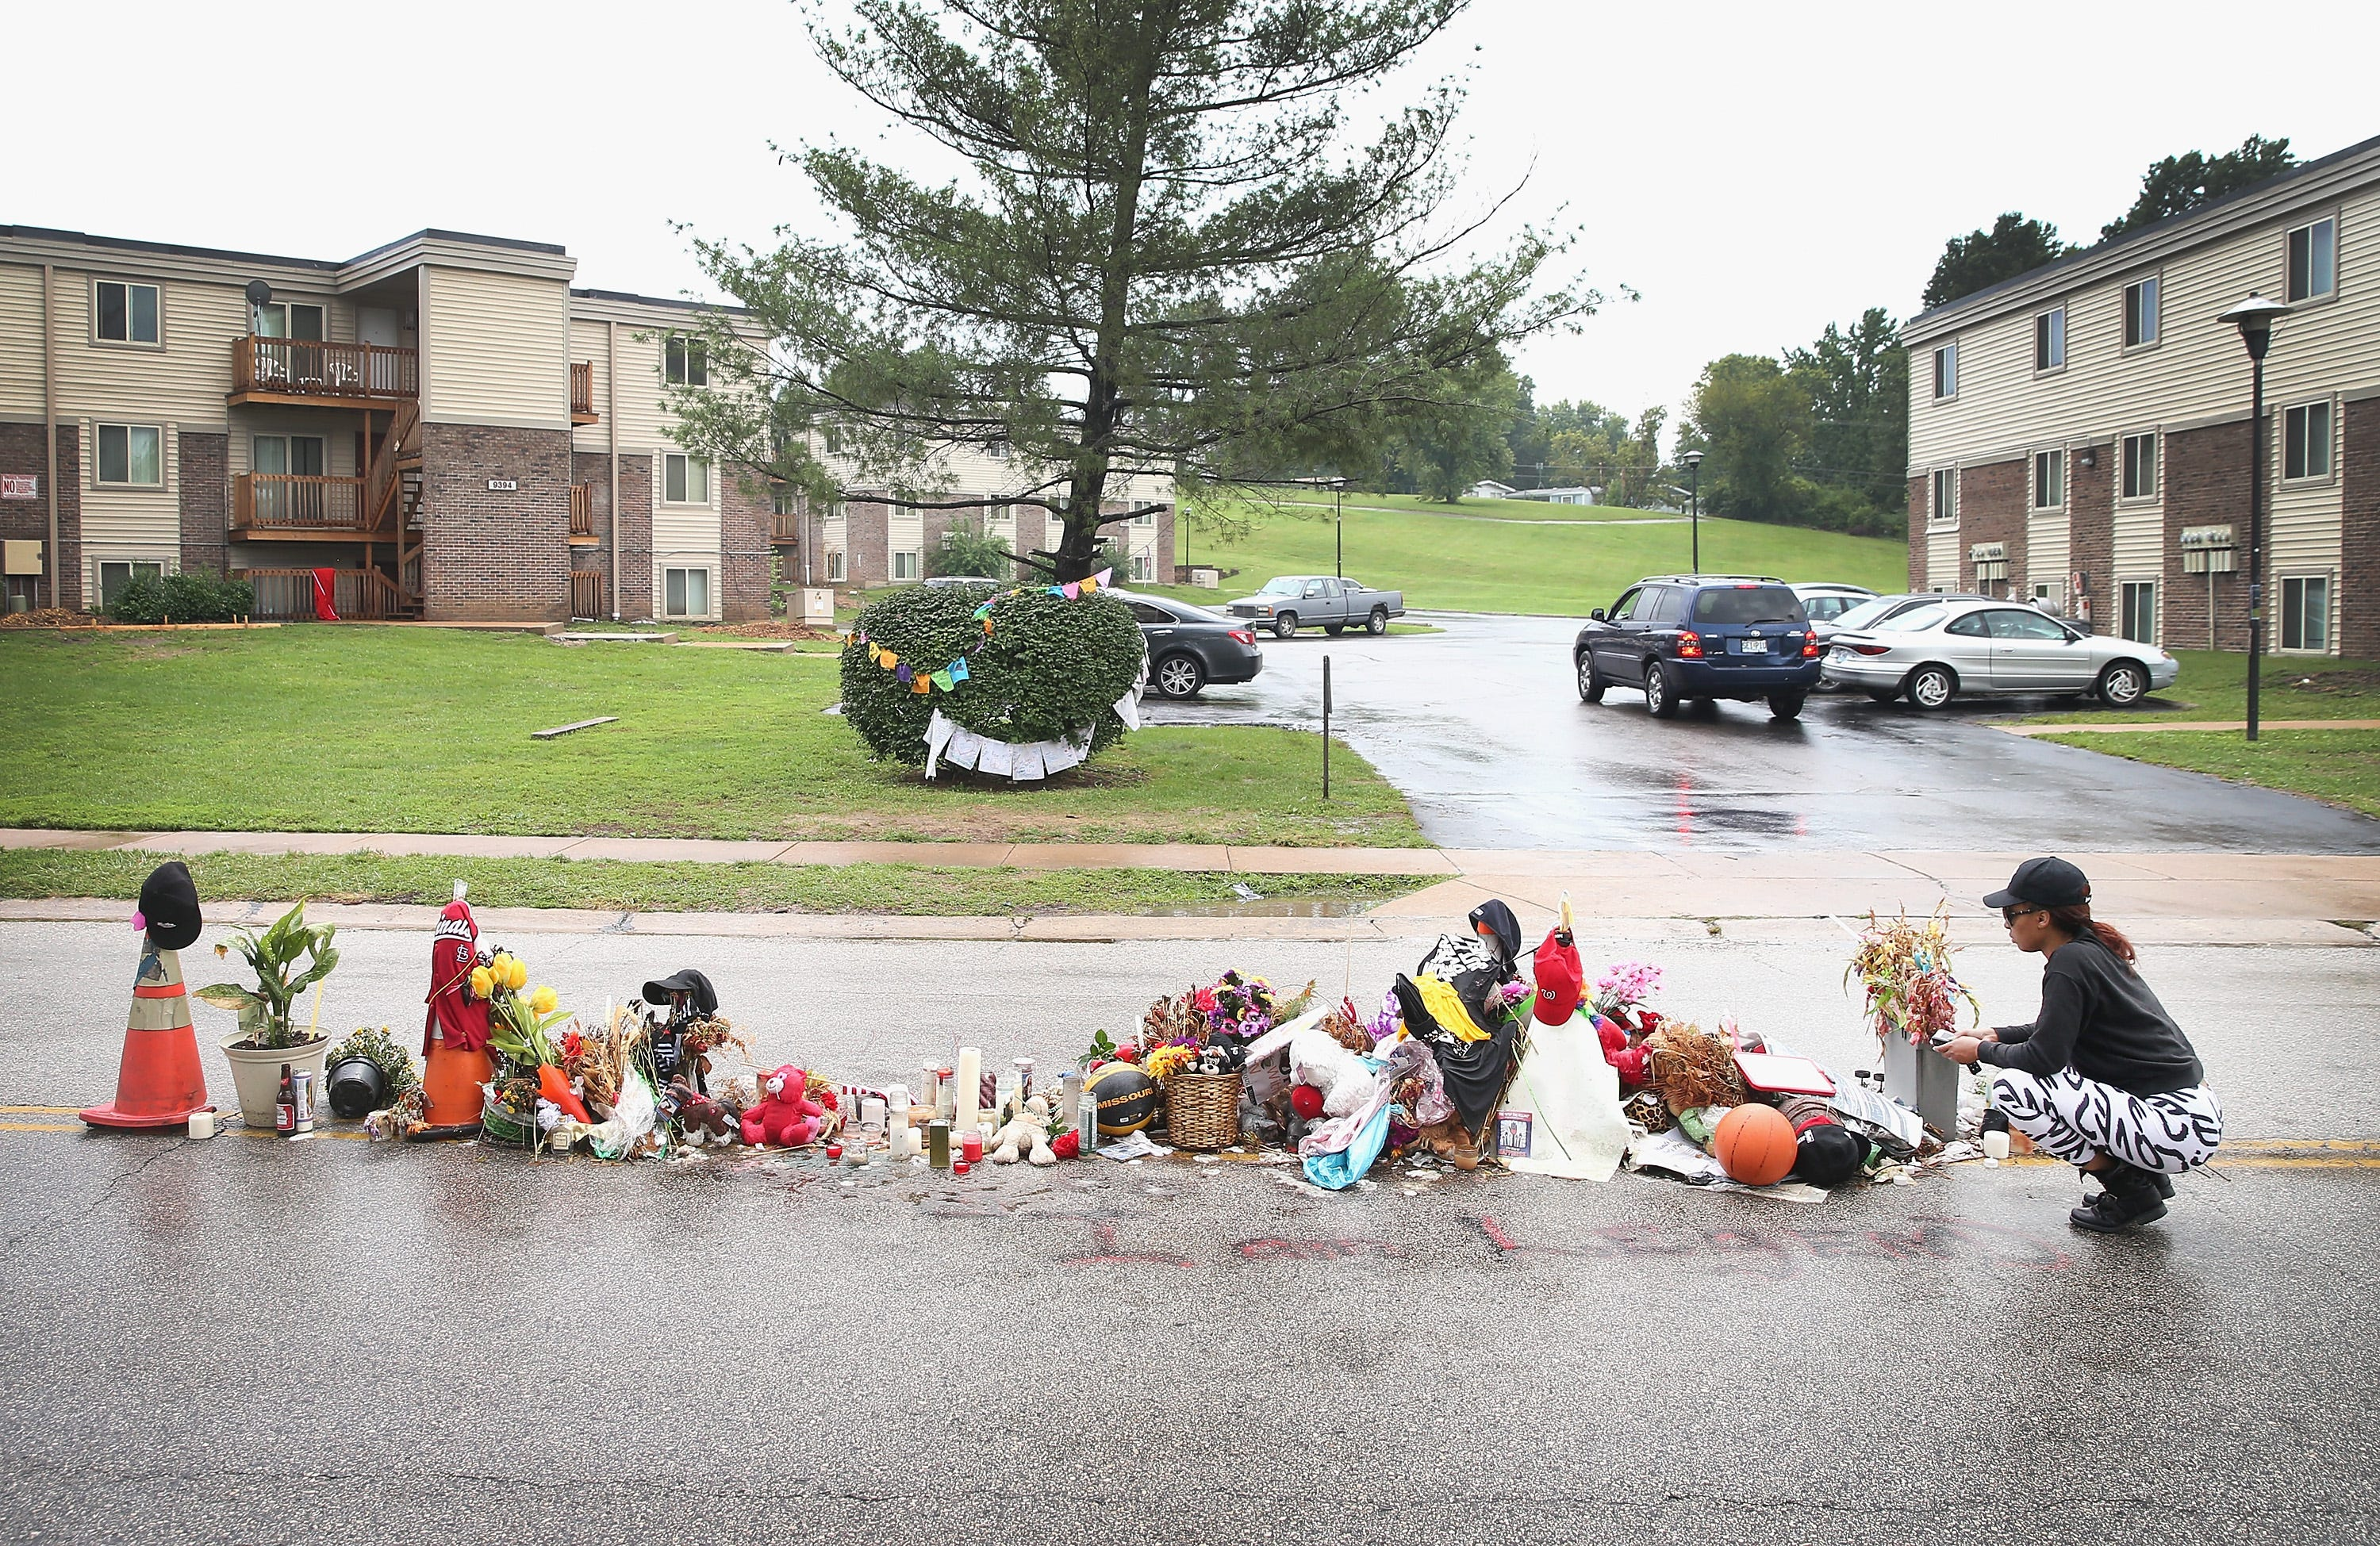 Tamika Staton leaves a message at a memorial in the middle of the road where teenager Michael Brown died after being shot by a police officer in 2014 in Ferguson, Mo., an incident that sparked investigations, protests and a nationwide discussion about policing.